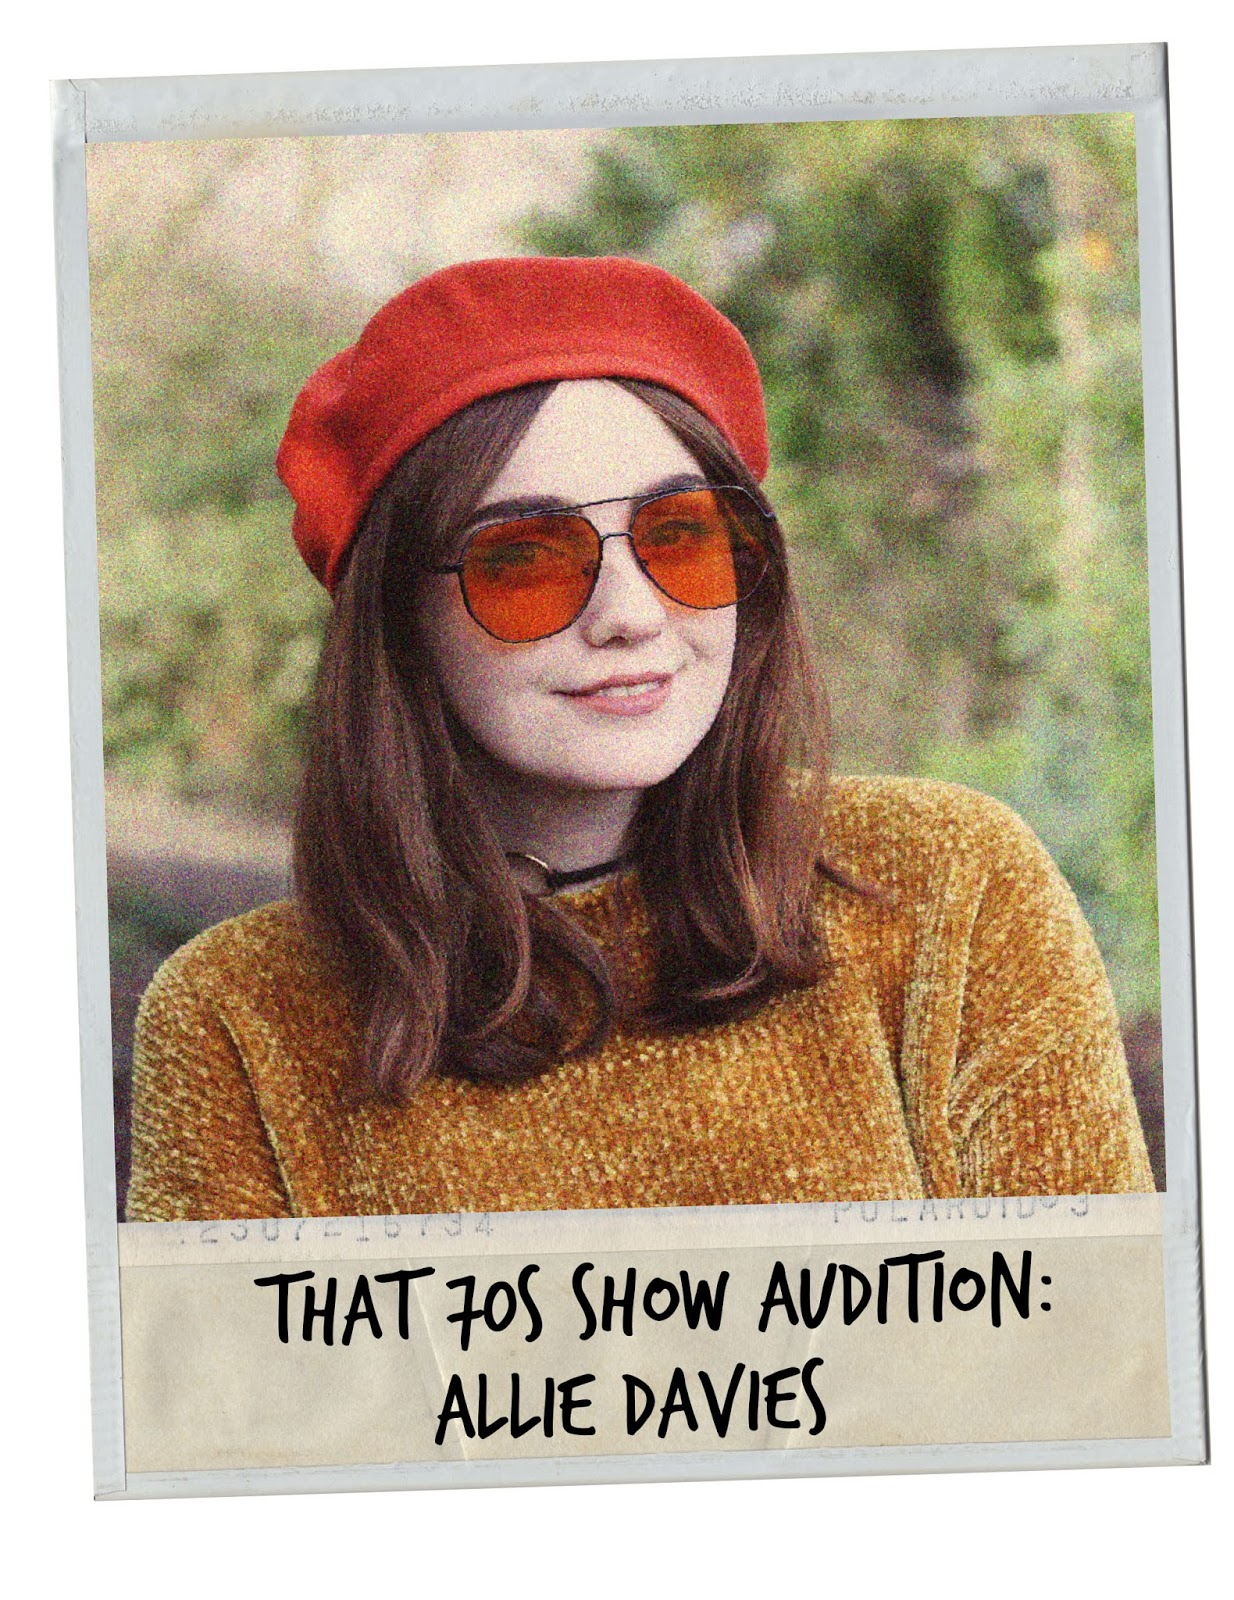 70s fashion polaroid with orange beret and aviator style sunglasses